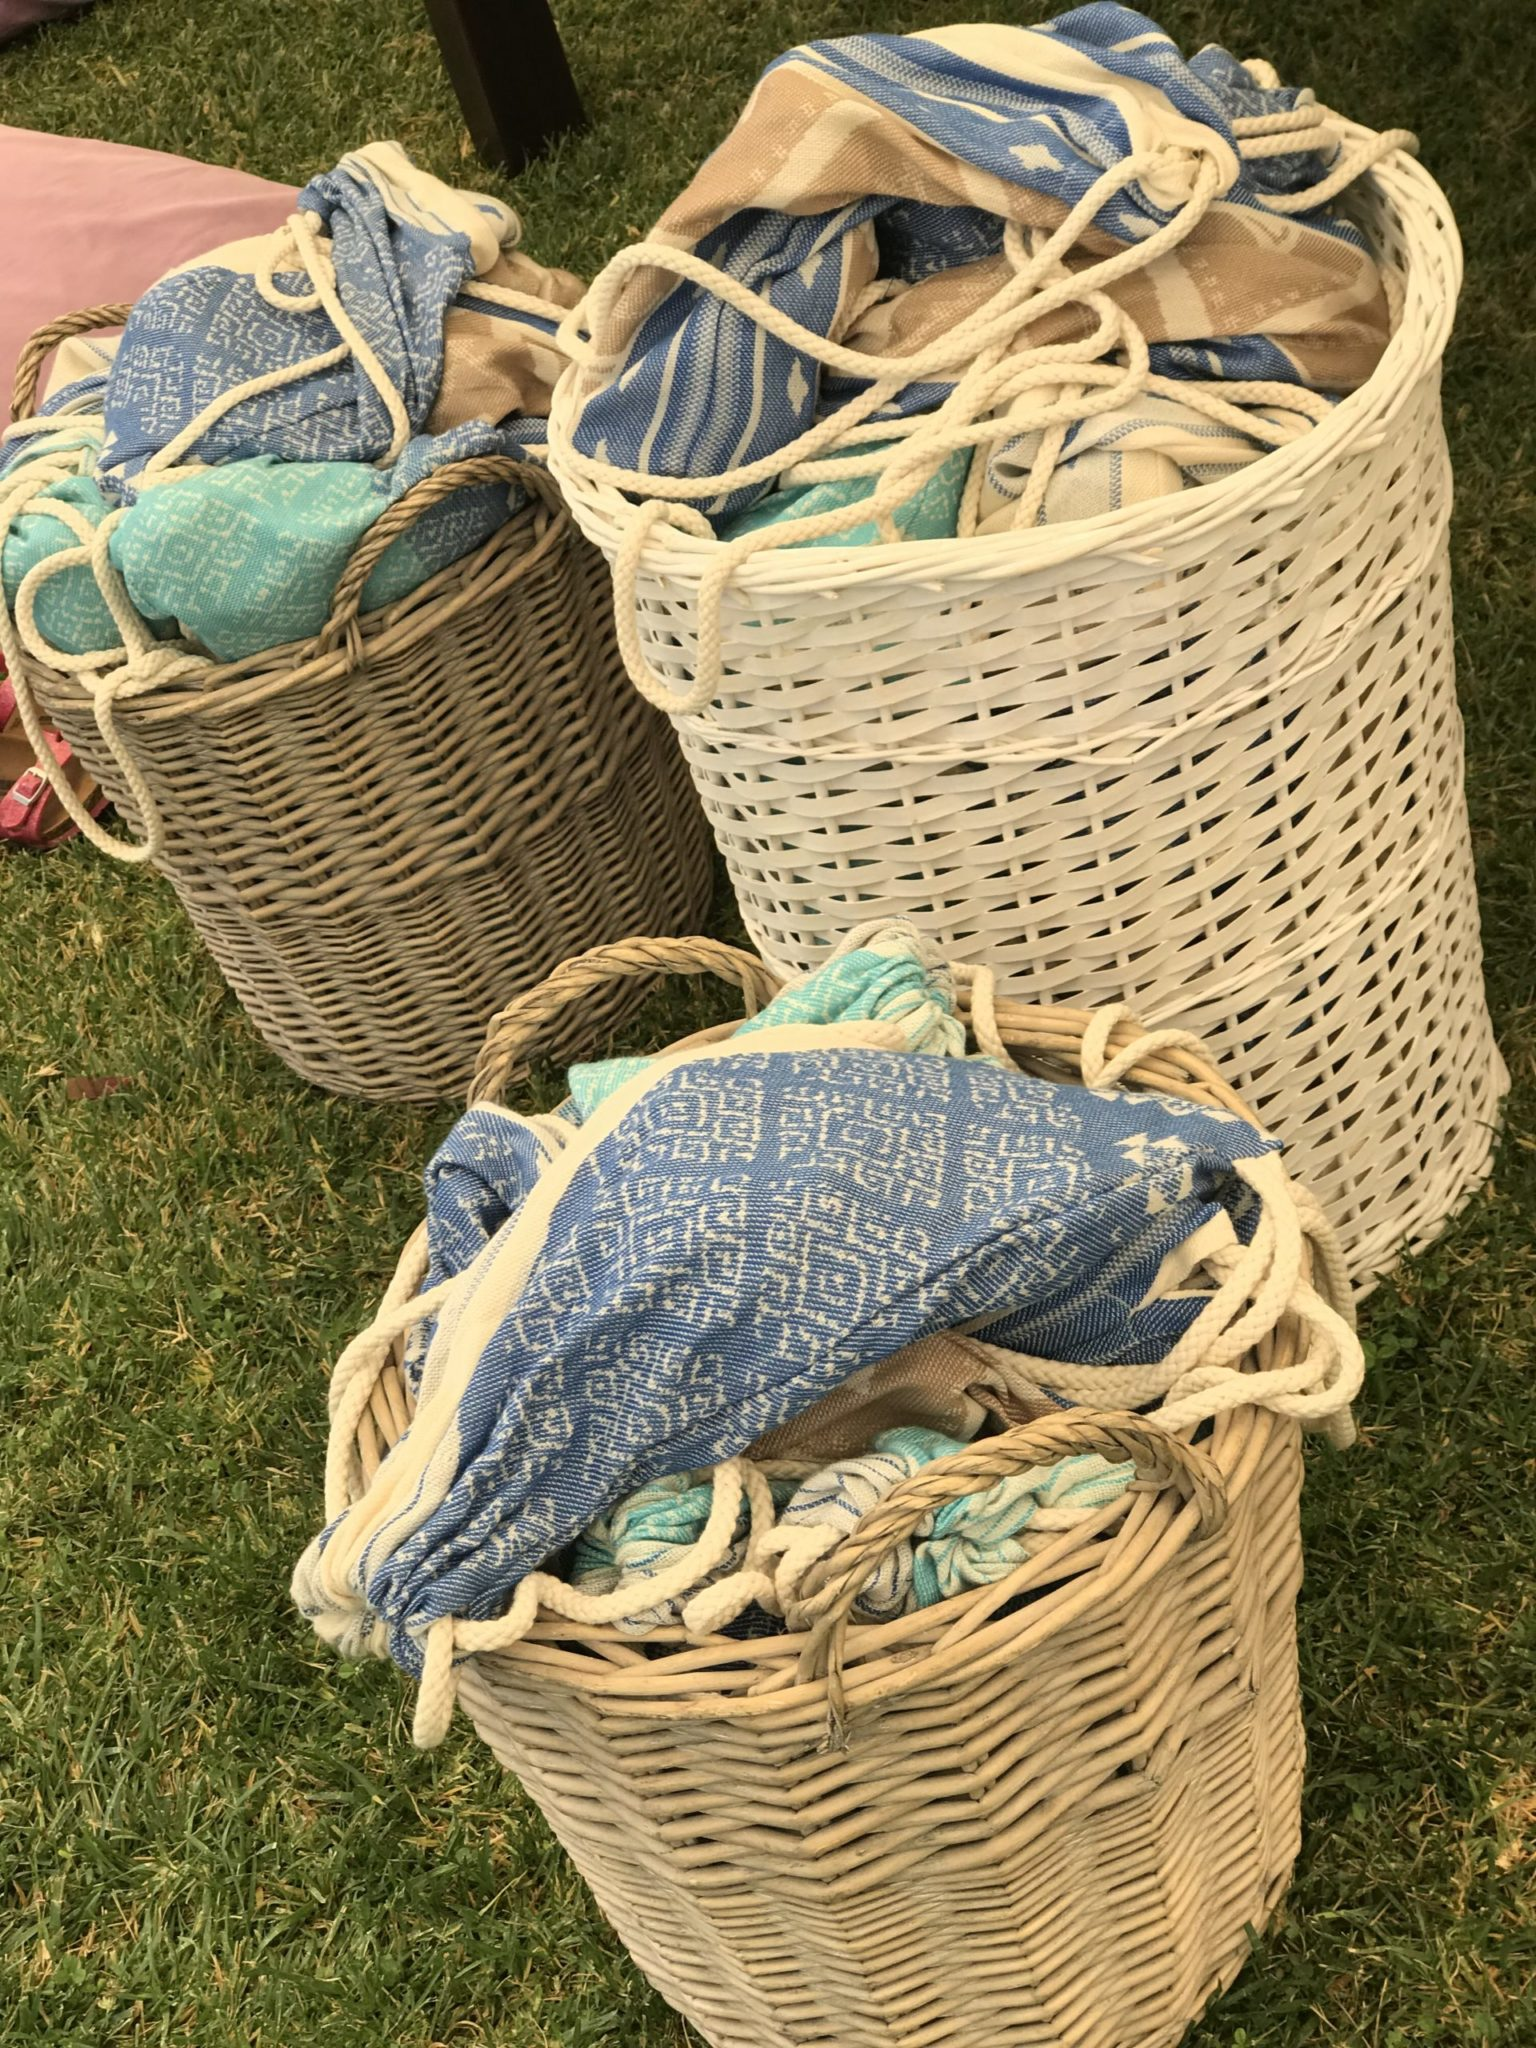 Earth and sky-baptism-kids gifts in baskets